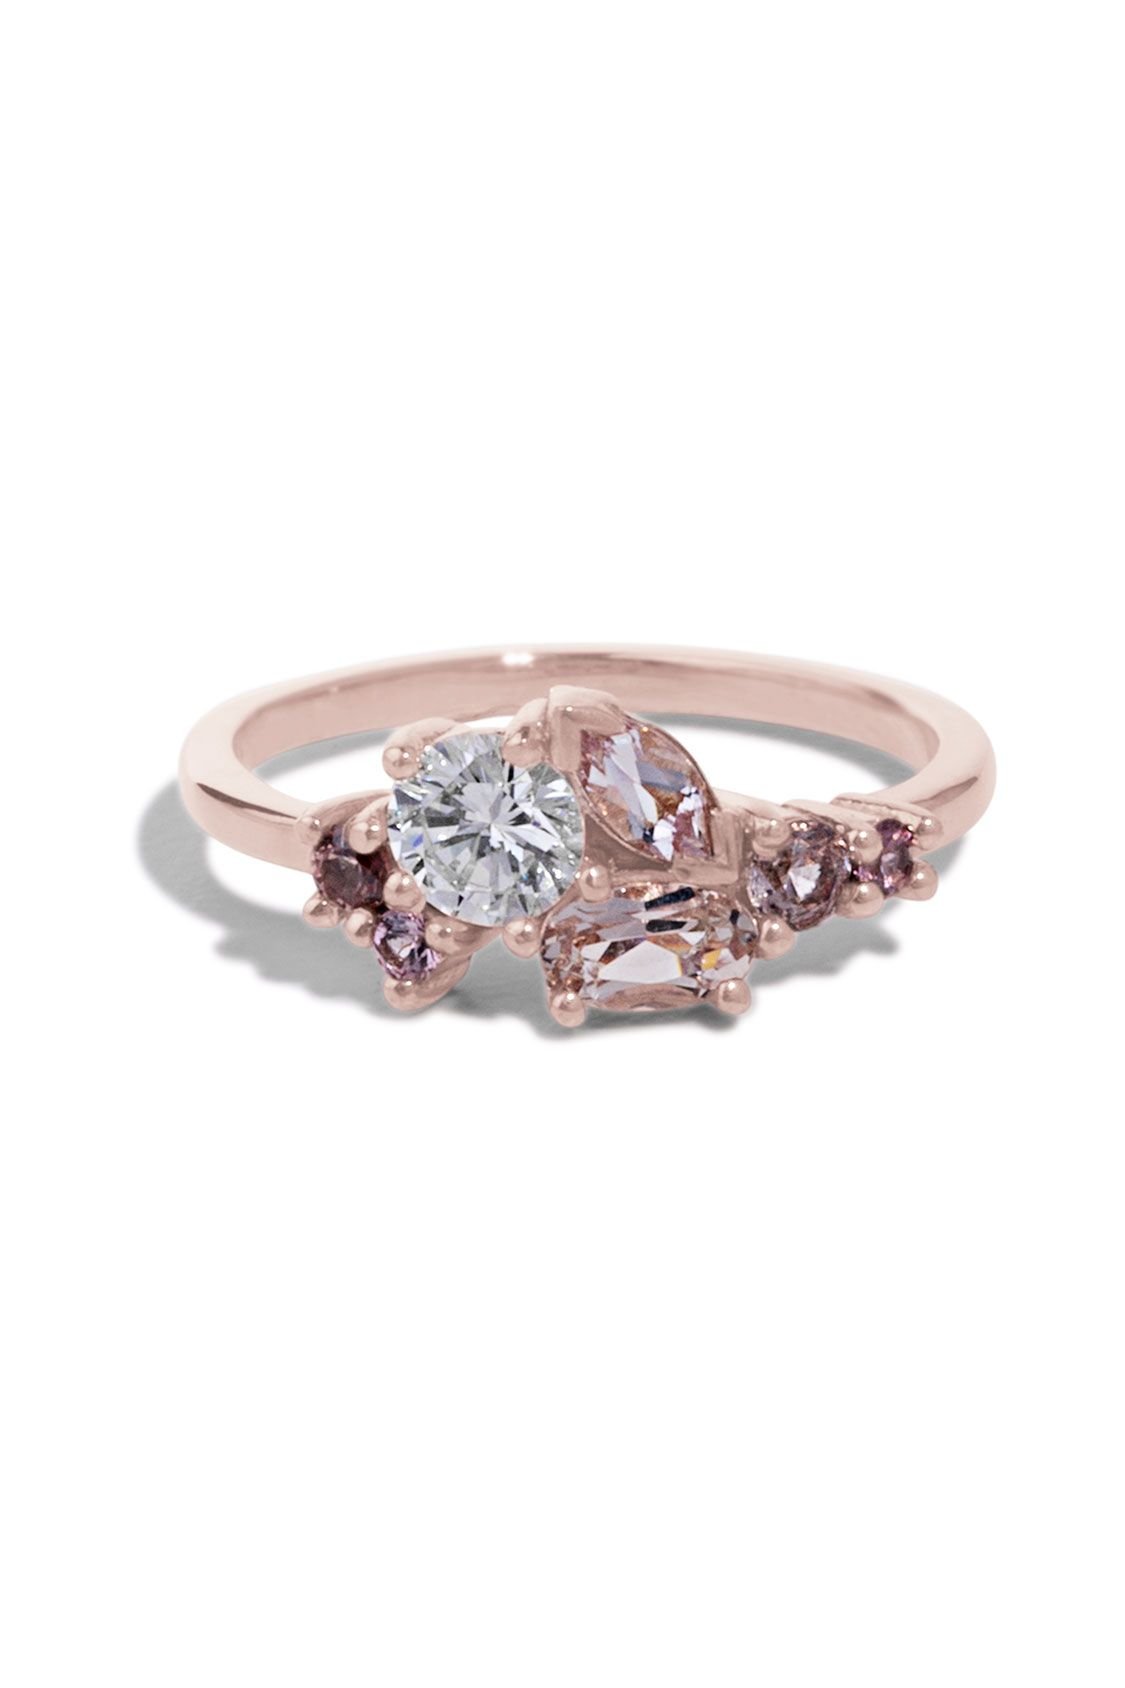 This Custom Cluster Ring Features An Heirloom 38ct Diamond Set With 5x3mm  Oval Morganite,